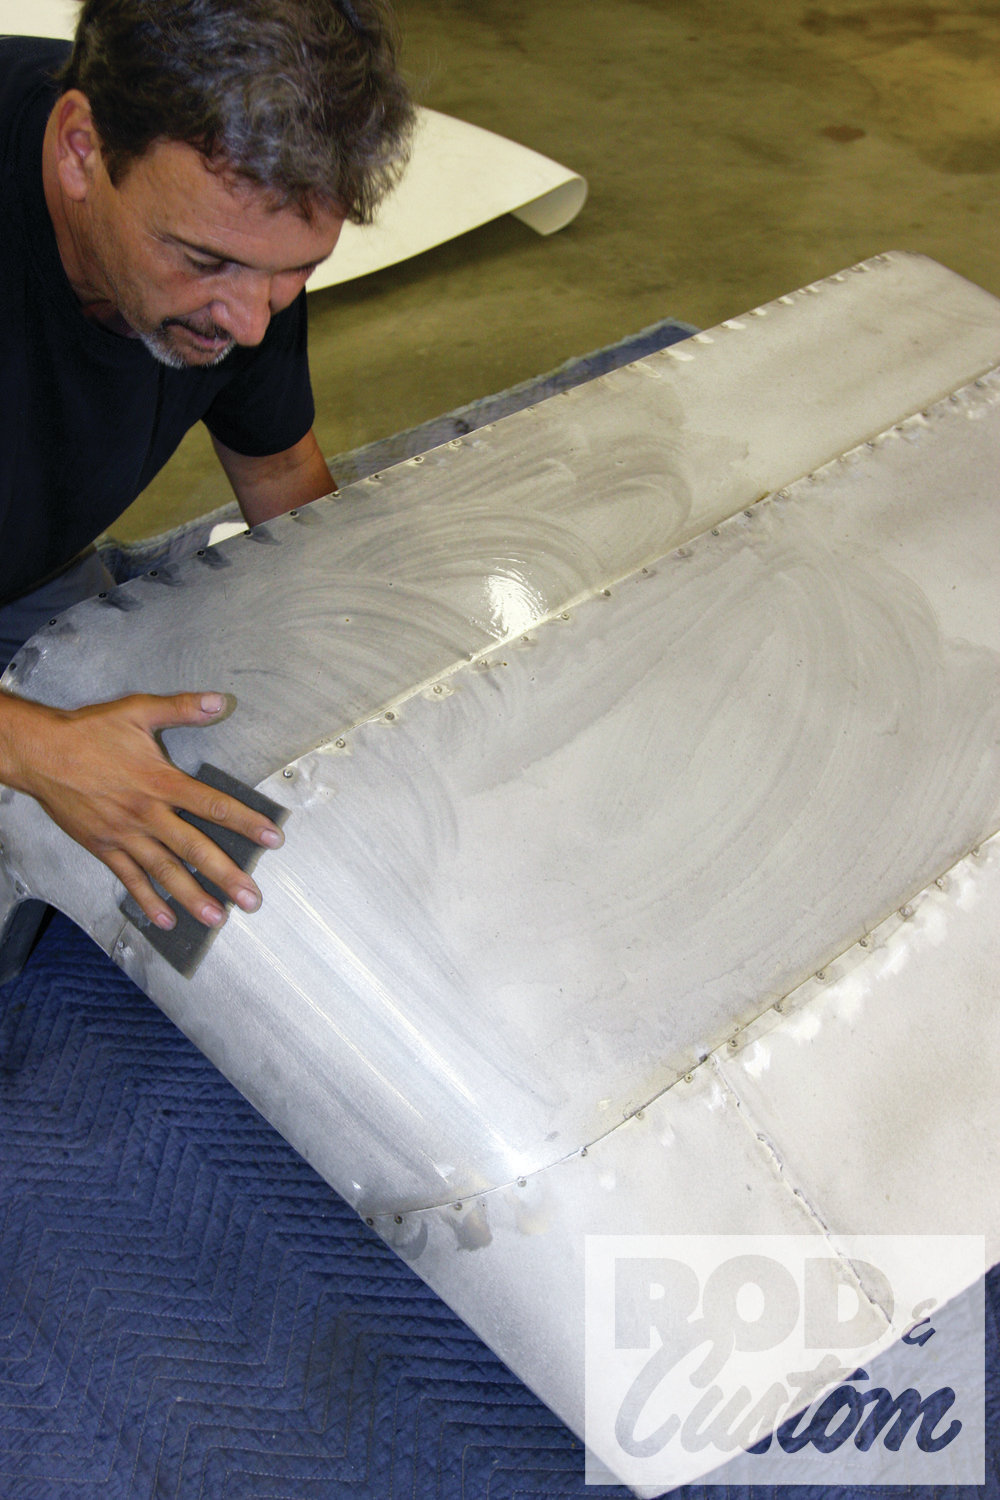 2. The roof was prepped first using an 80-grit disc on a DA sander followed by a Scotch-Brite and degreaser. Note the screw heads have been ground down so as not to be visible through the canvas and foam padding.